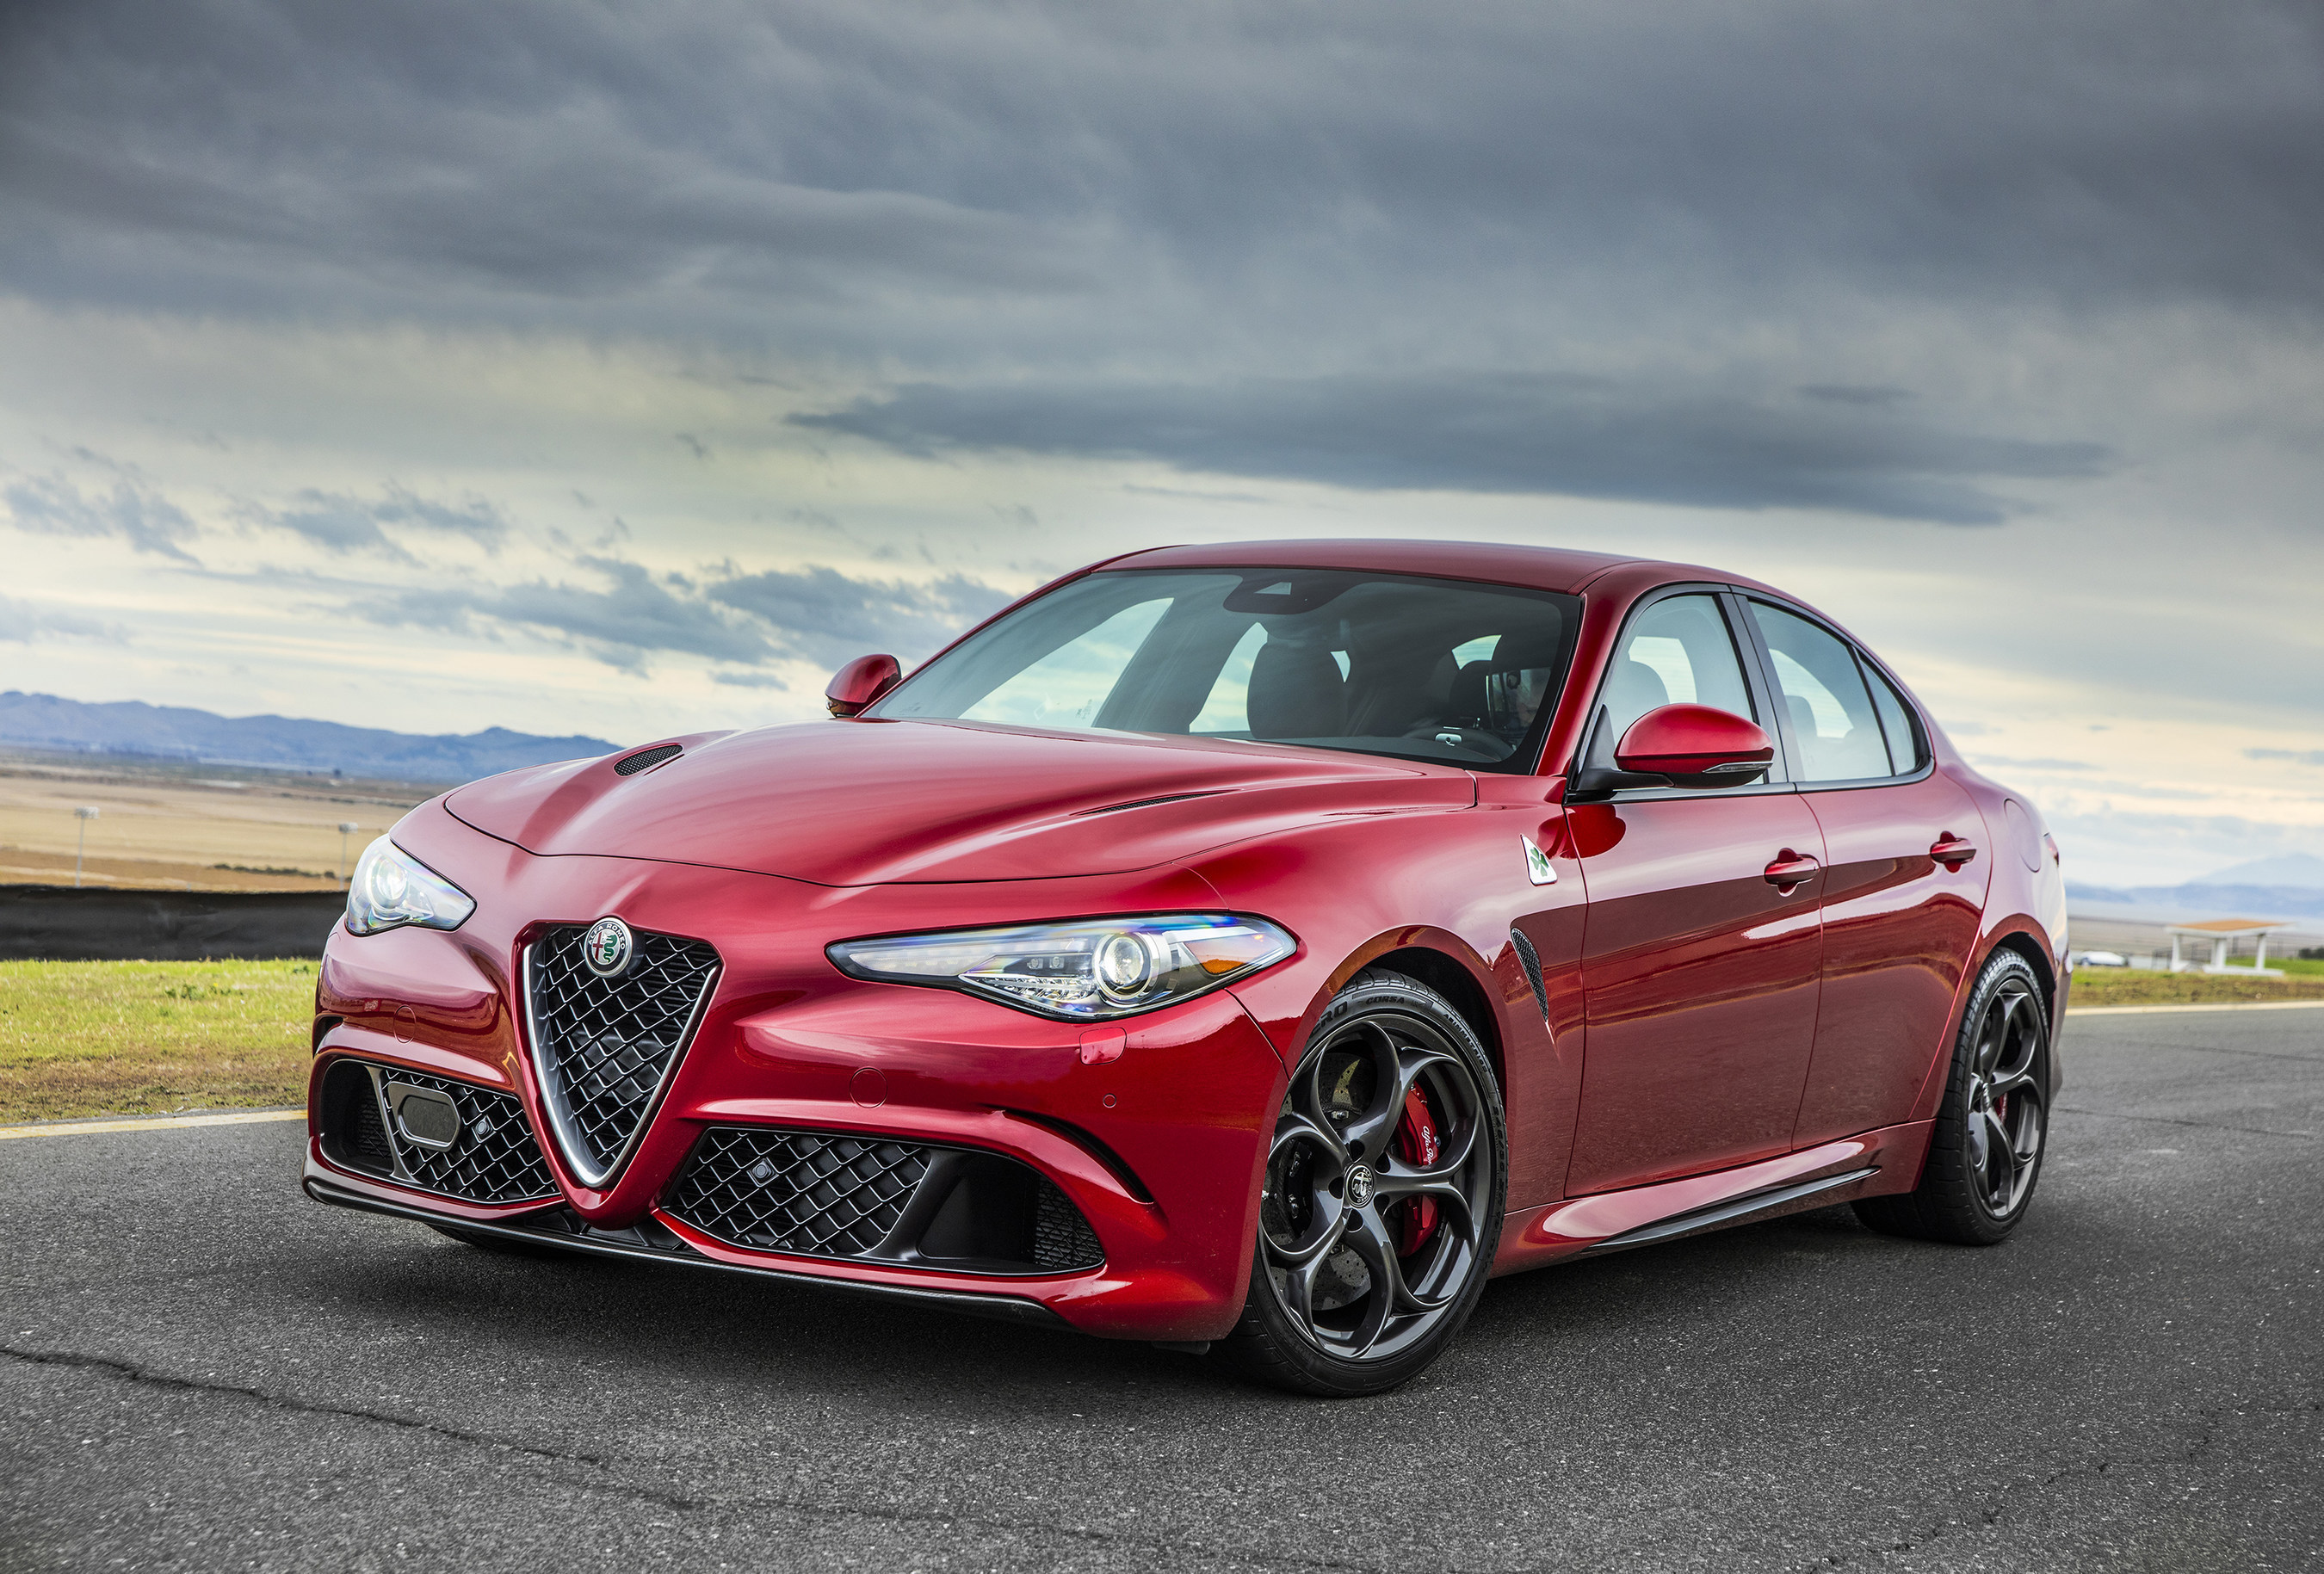 All-new Alfa Romeo Giulia Named 2017 Auto del Ano(C) (Car of the Year) in Mid-size Sedan Segment by Hispanic Motor Press